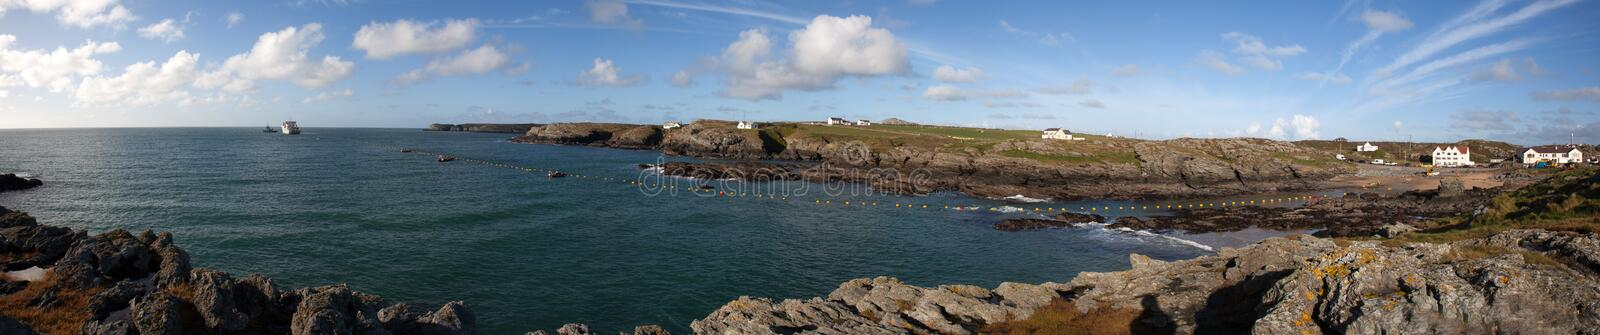 Download Fibre Optic Cable Coming Ashore Stock Photo - Image of anglesey, ship: 28074646